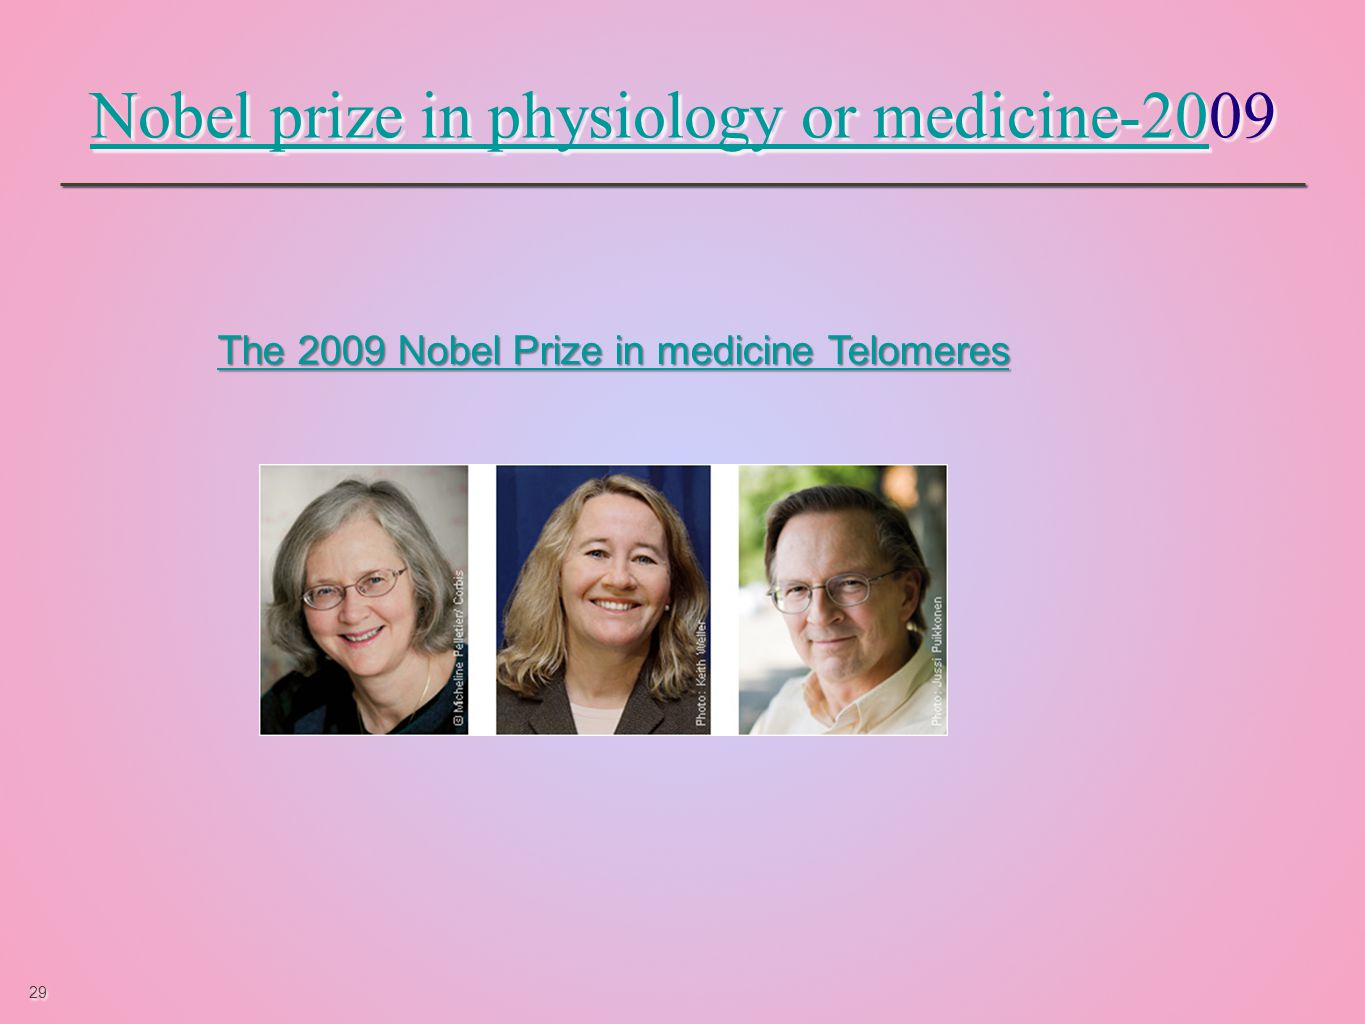 29 Nobel prize in physiology or medicine-20Nobel prize in physiology or medicine-2009 Nobel prize in physiology or medicine-20Nobel prize in physiology or medicine-2009 The 2009 Nobel Prize in medicine Telomeres The 2009 Nobel Prize in medicine Telomeres